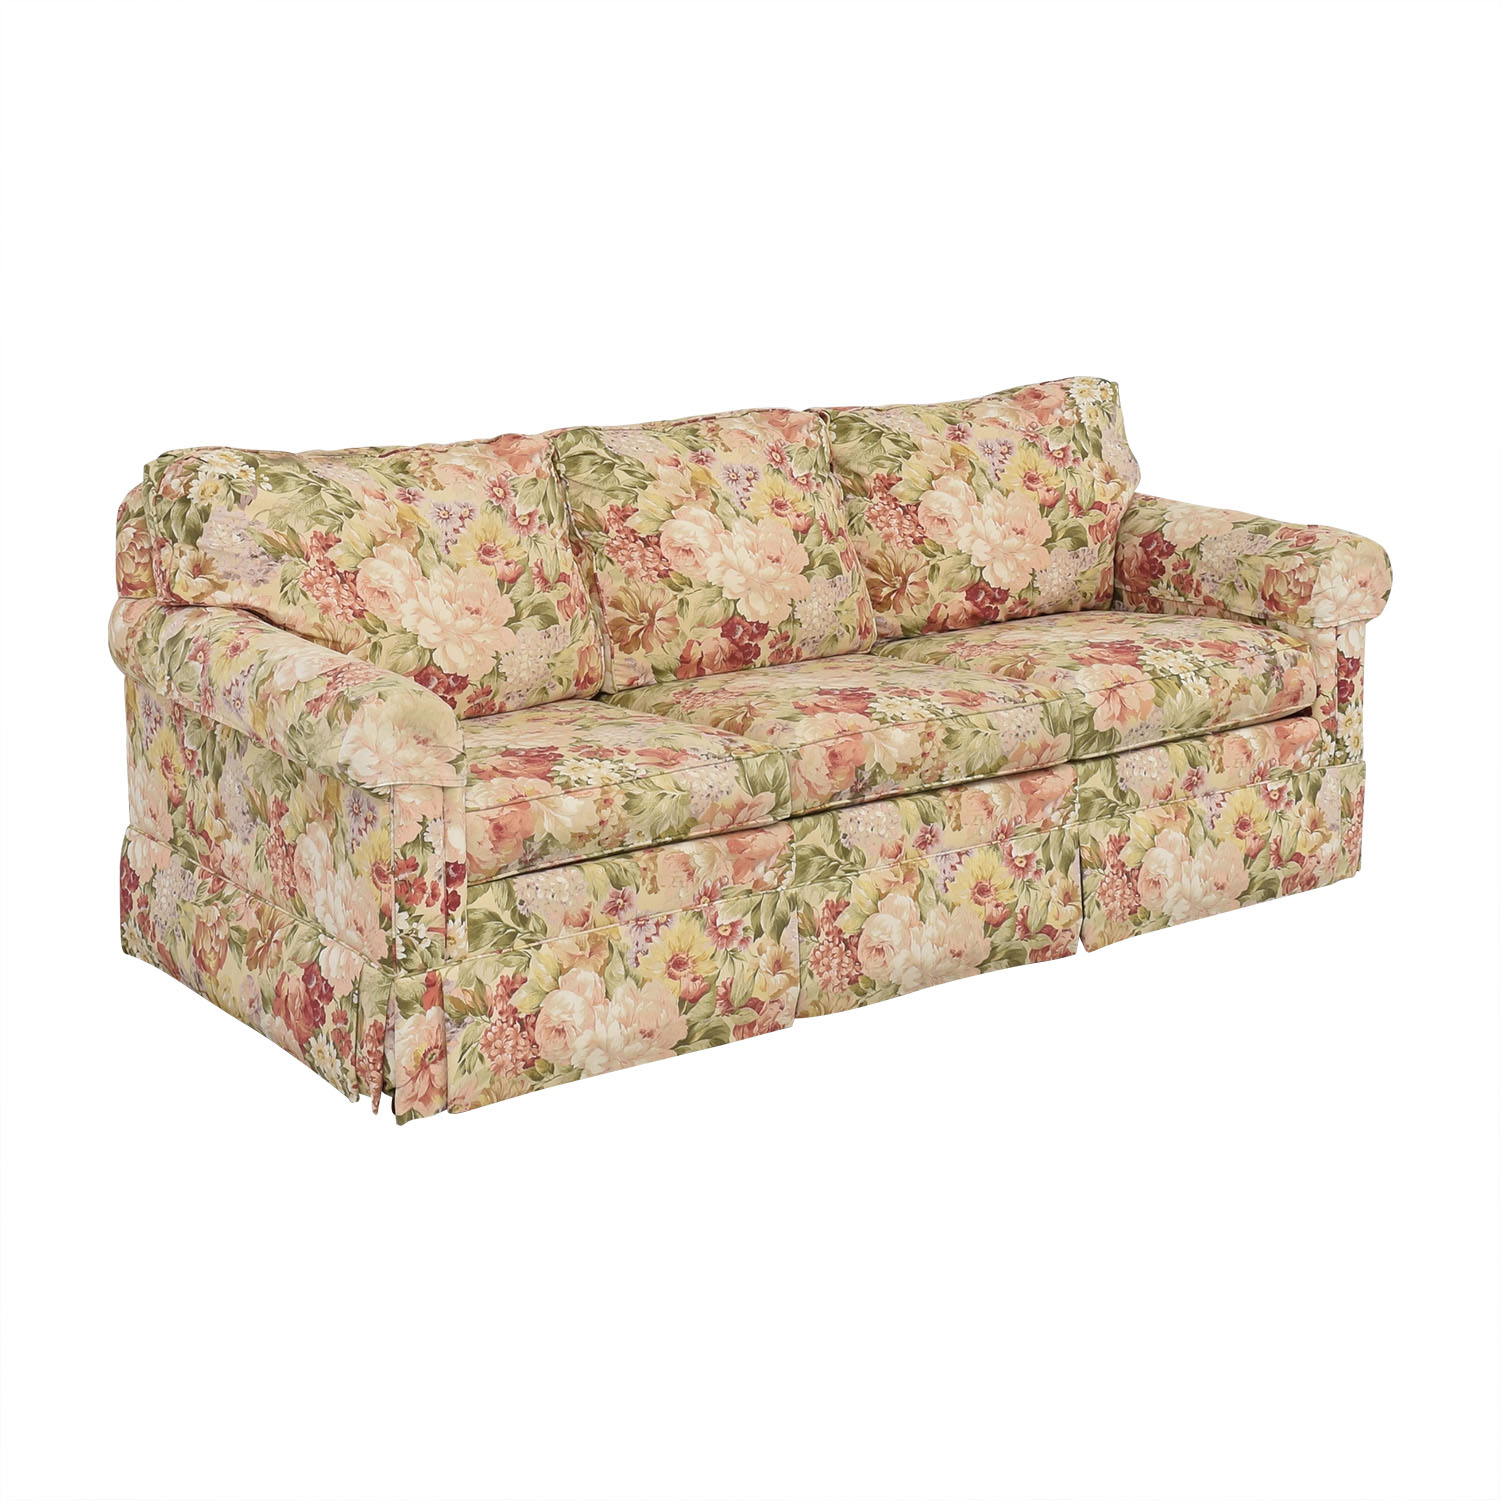 Ethan Allen Ethan Allen Floral Slipcovered Sofa pa